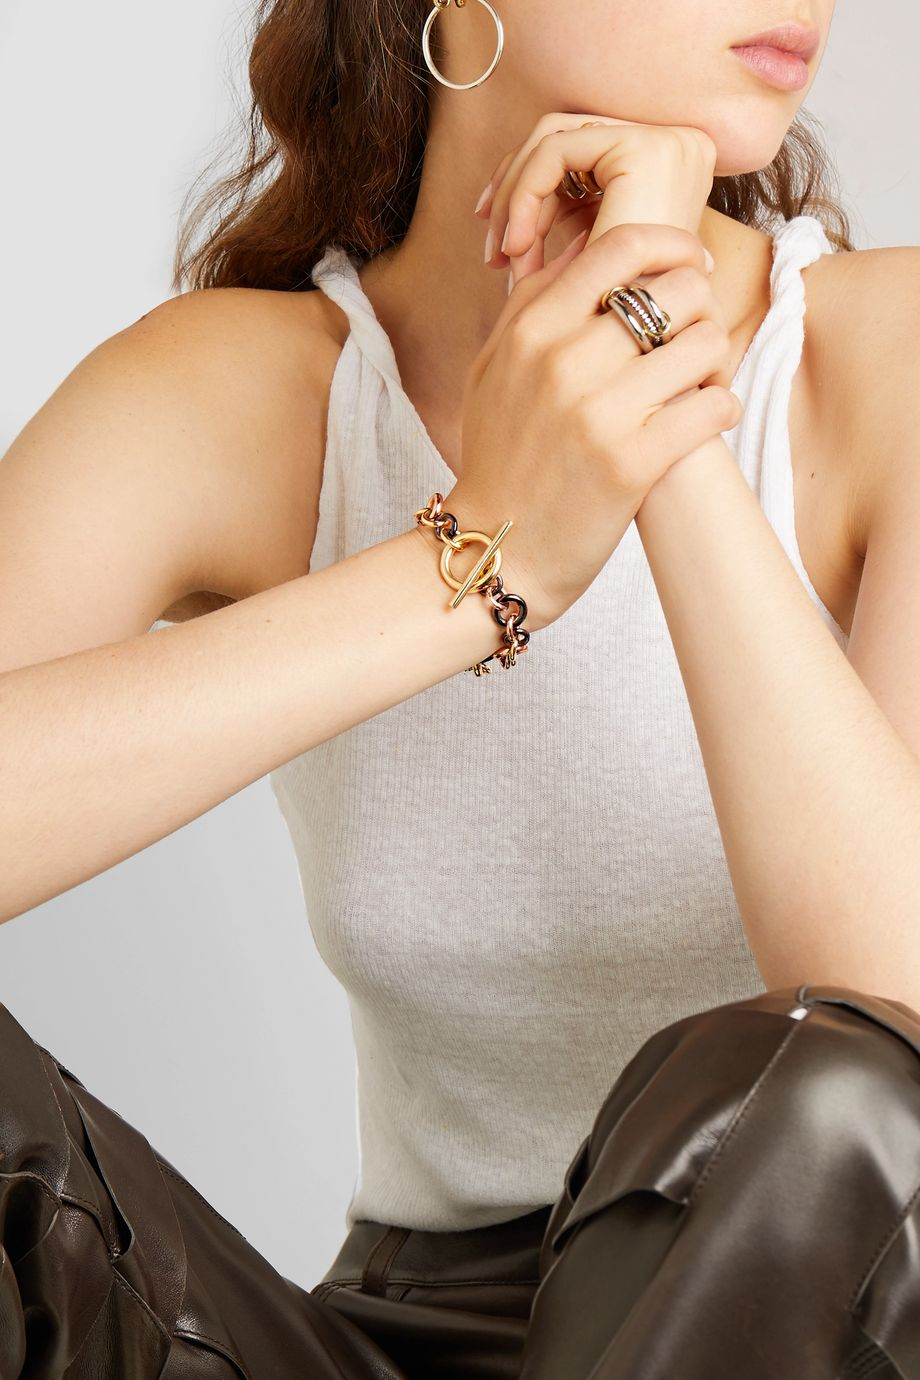 Spinelli Kilcollin Avalon 18-karat yellow and rose gold and rhodium-plated sterling silver diamond bracelet